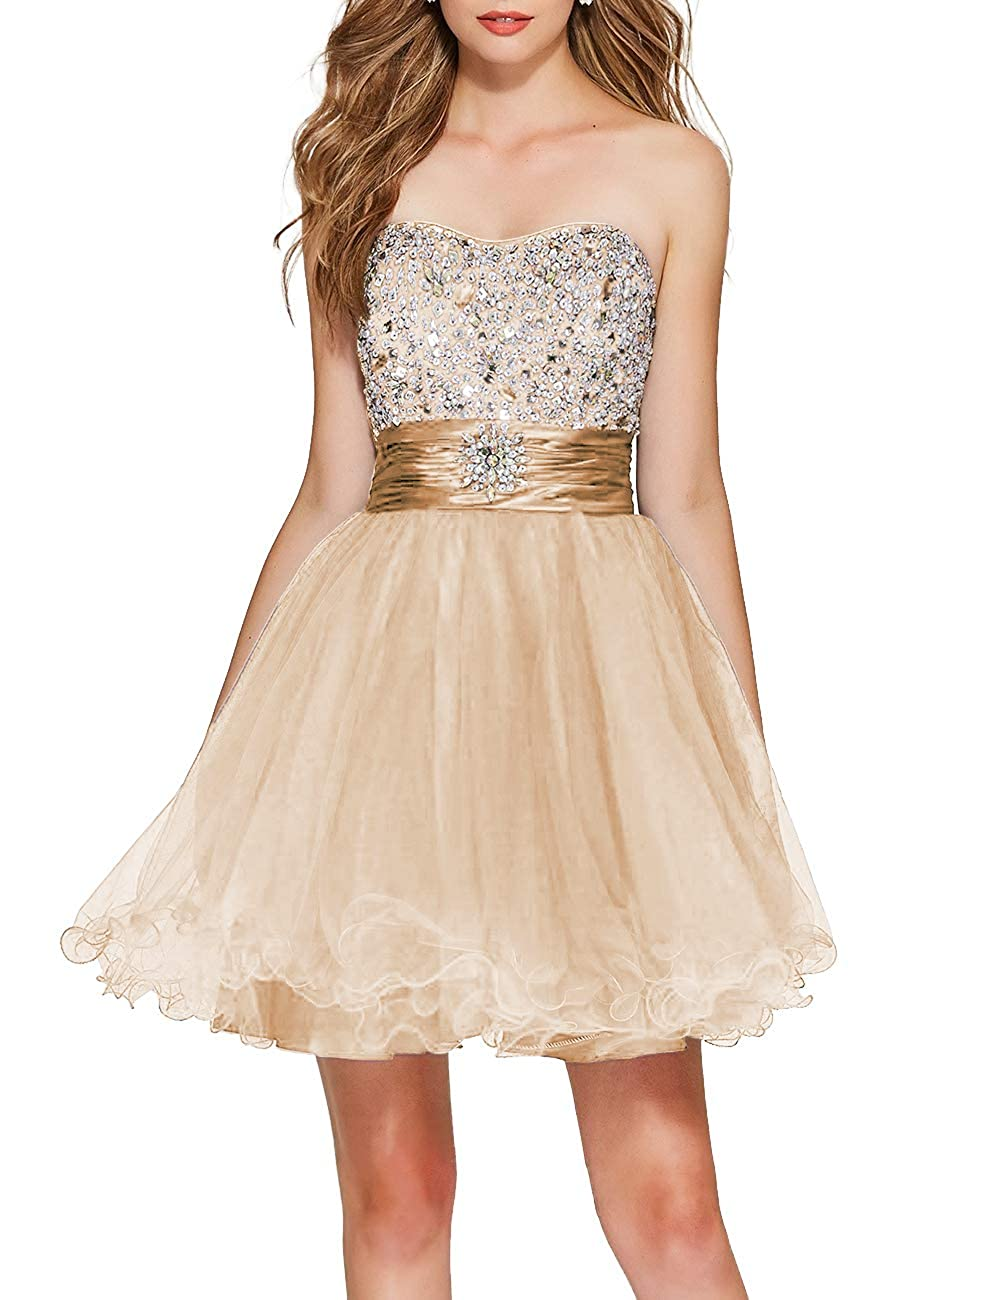 Champagne Uther Girls Sweetheart Bridesmaid Dresses Beaded Homecoming Dress Short Prom Gown